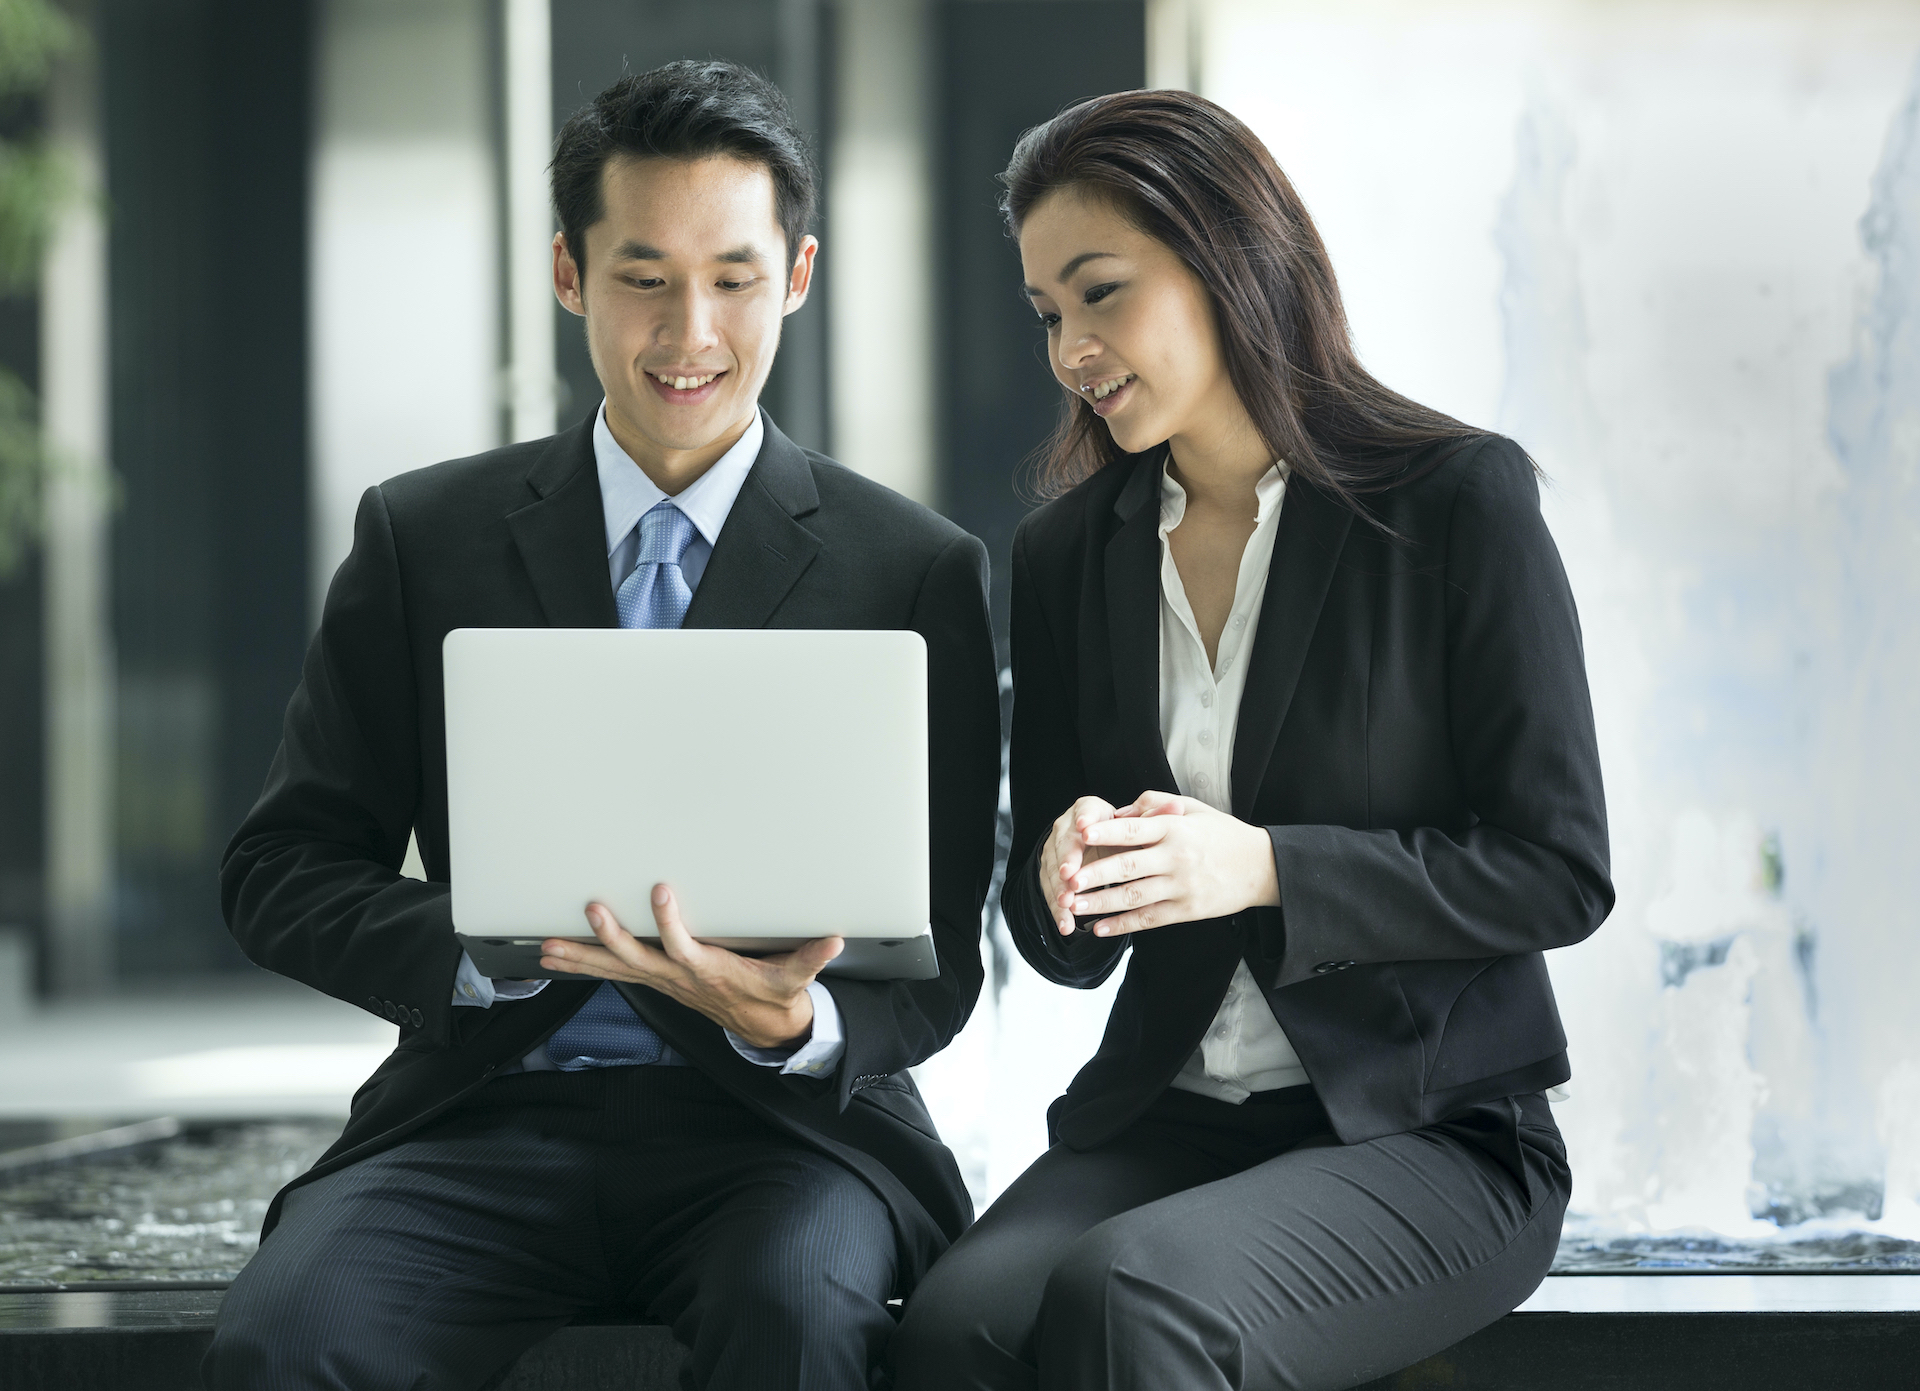 Asian male jobseeker and Asian female headhunter looking at laptop screen together